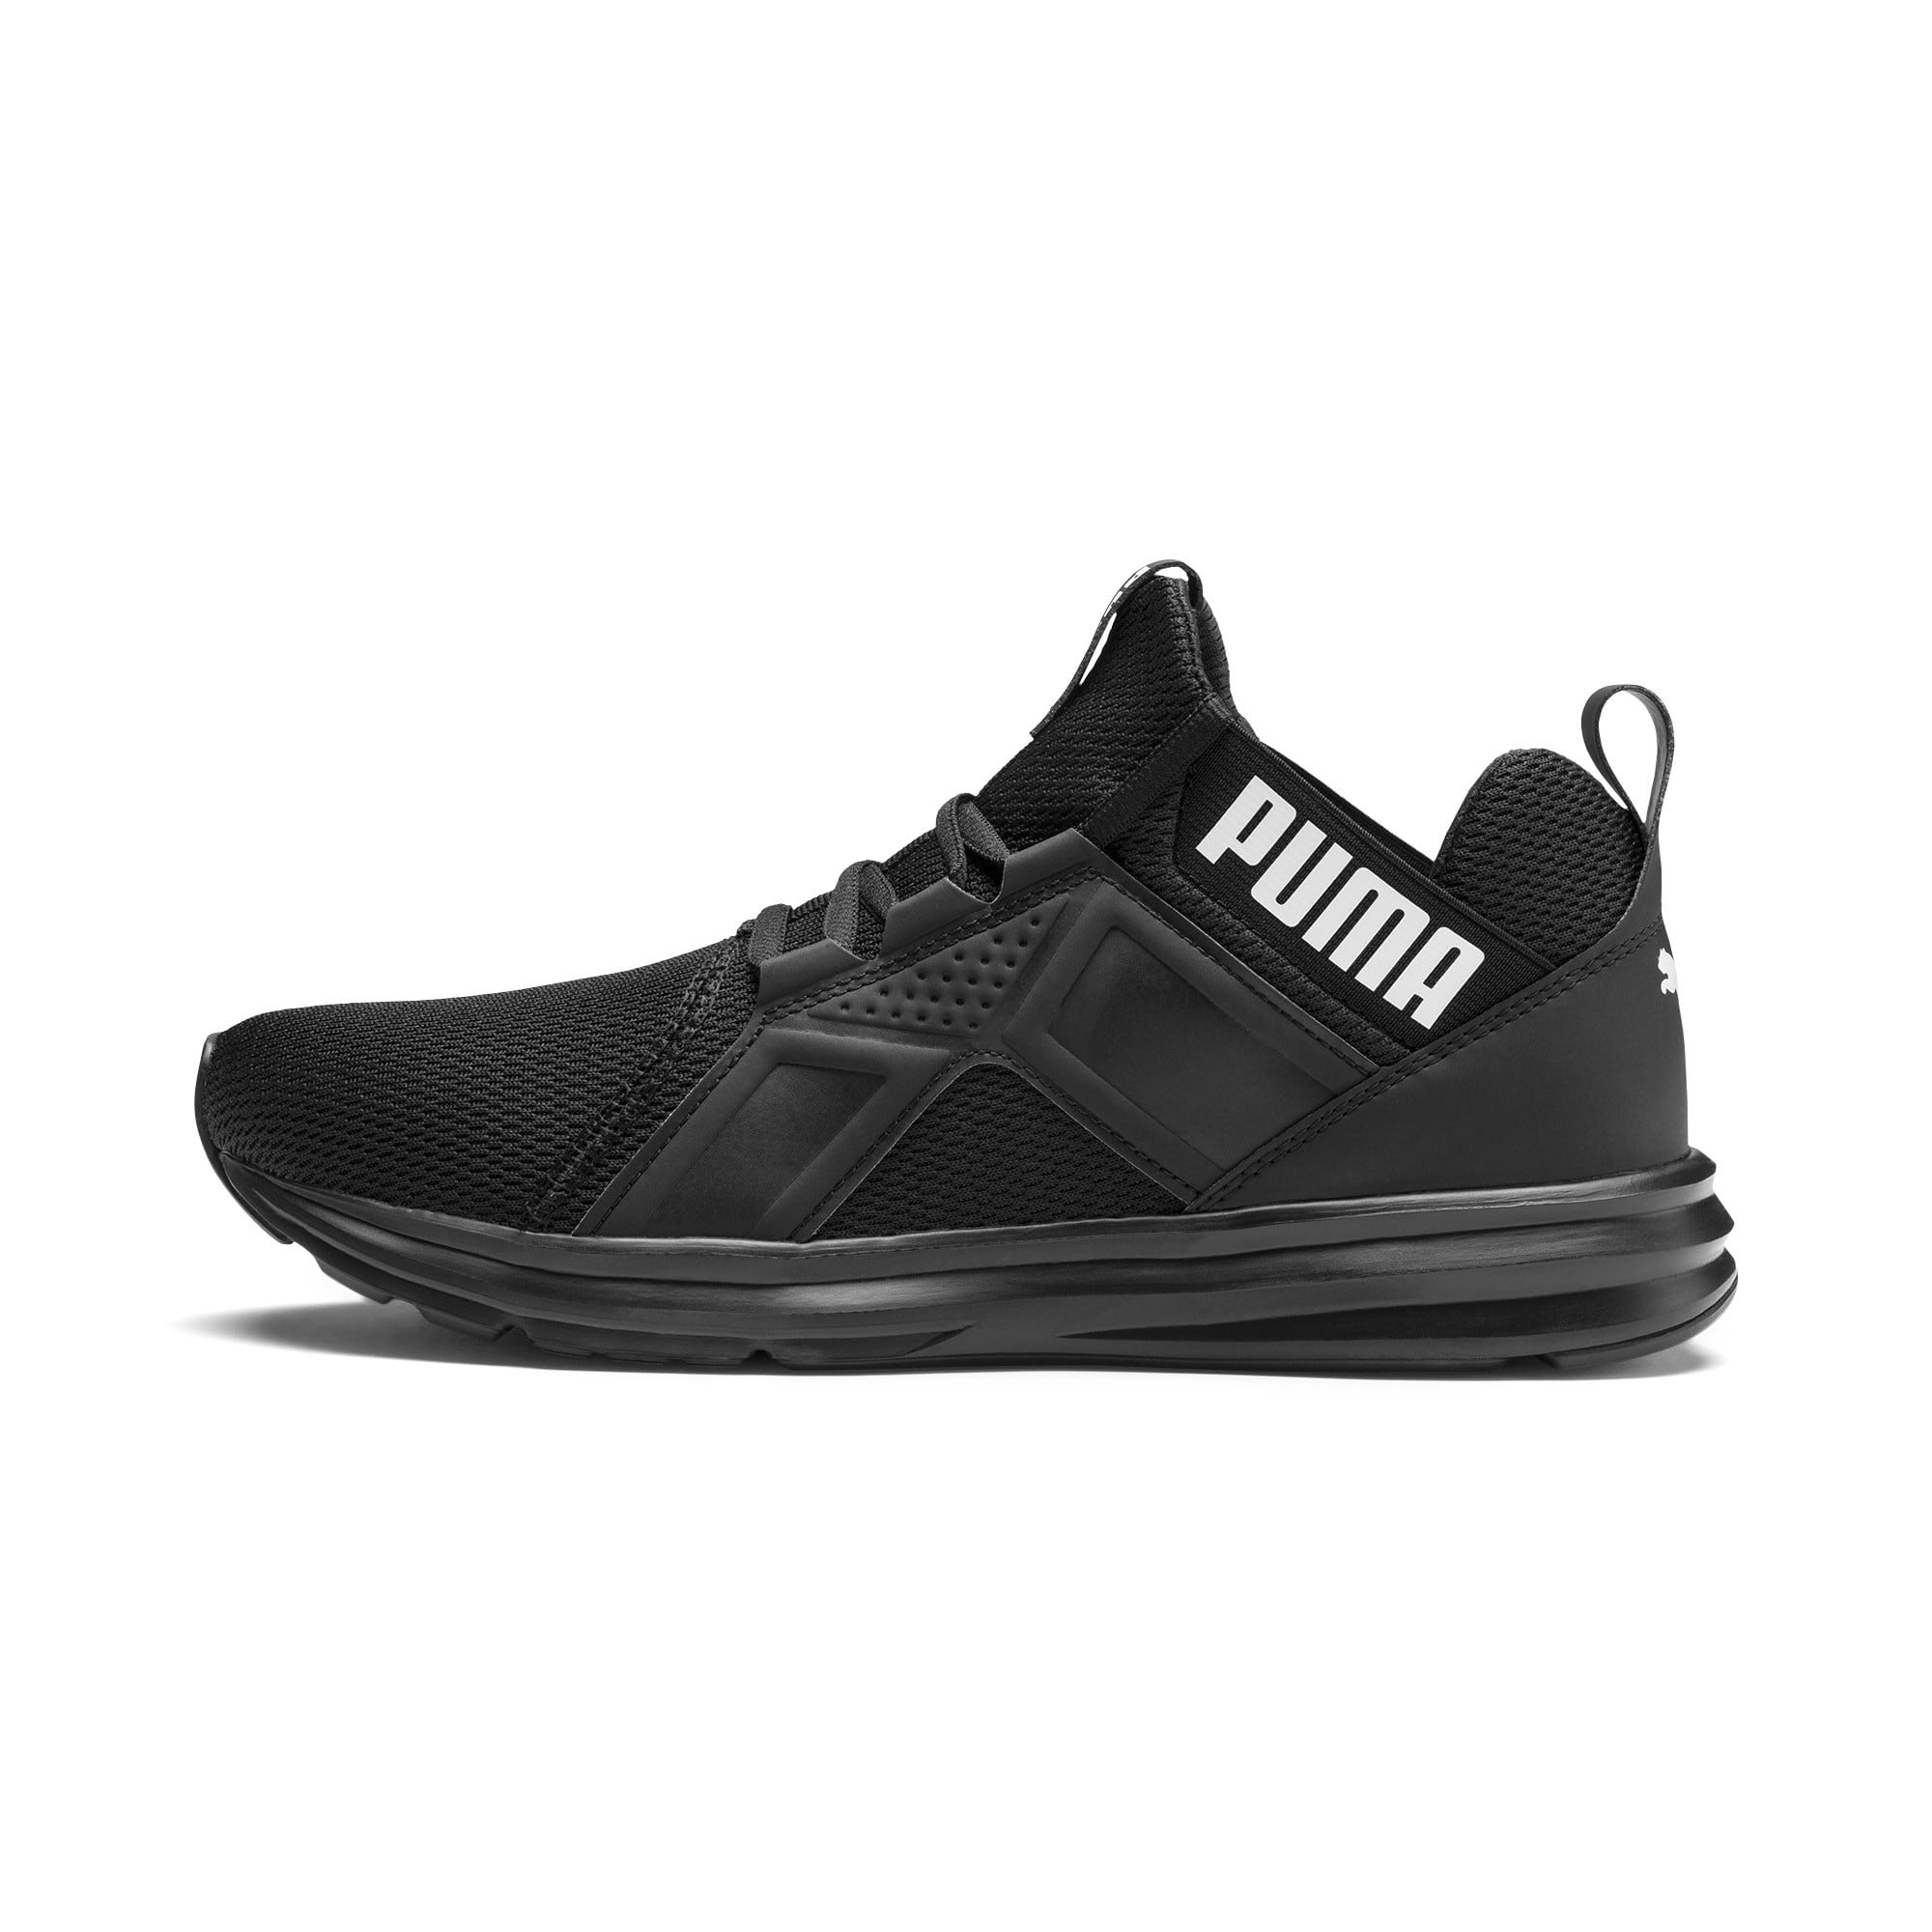 Thumbnail 1 of Enzo Sport Herren Sneaker, Puma Black-Puma Black, medium